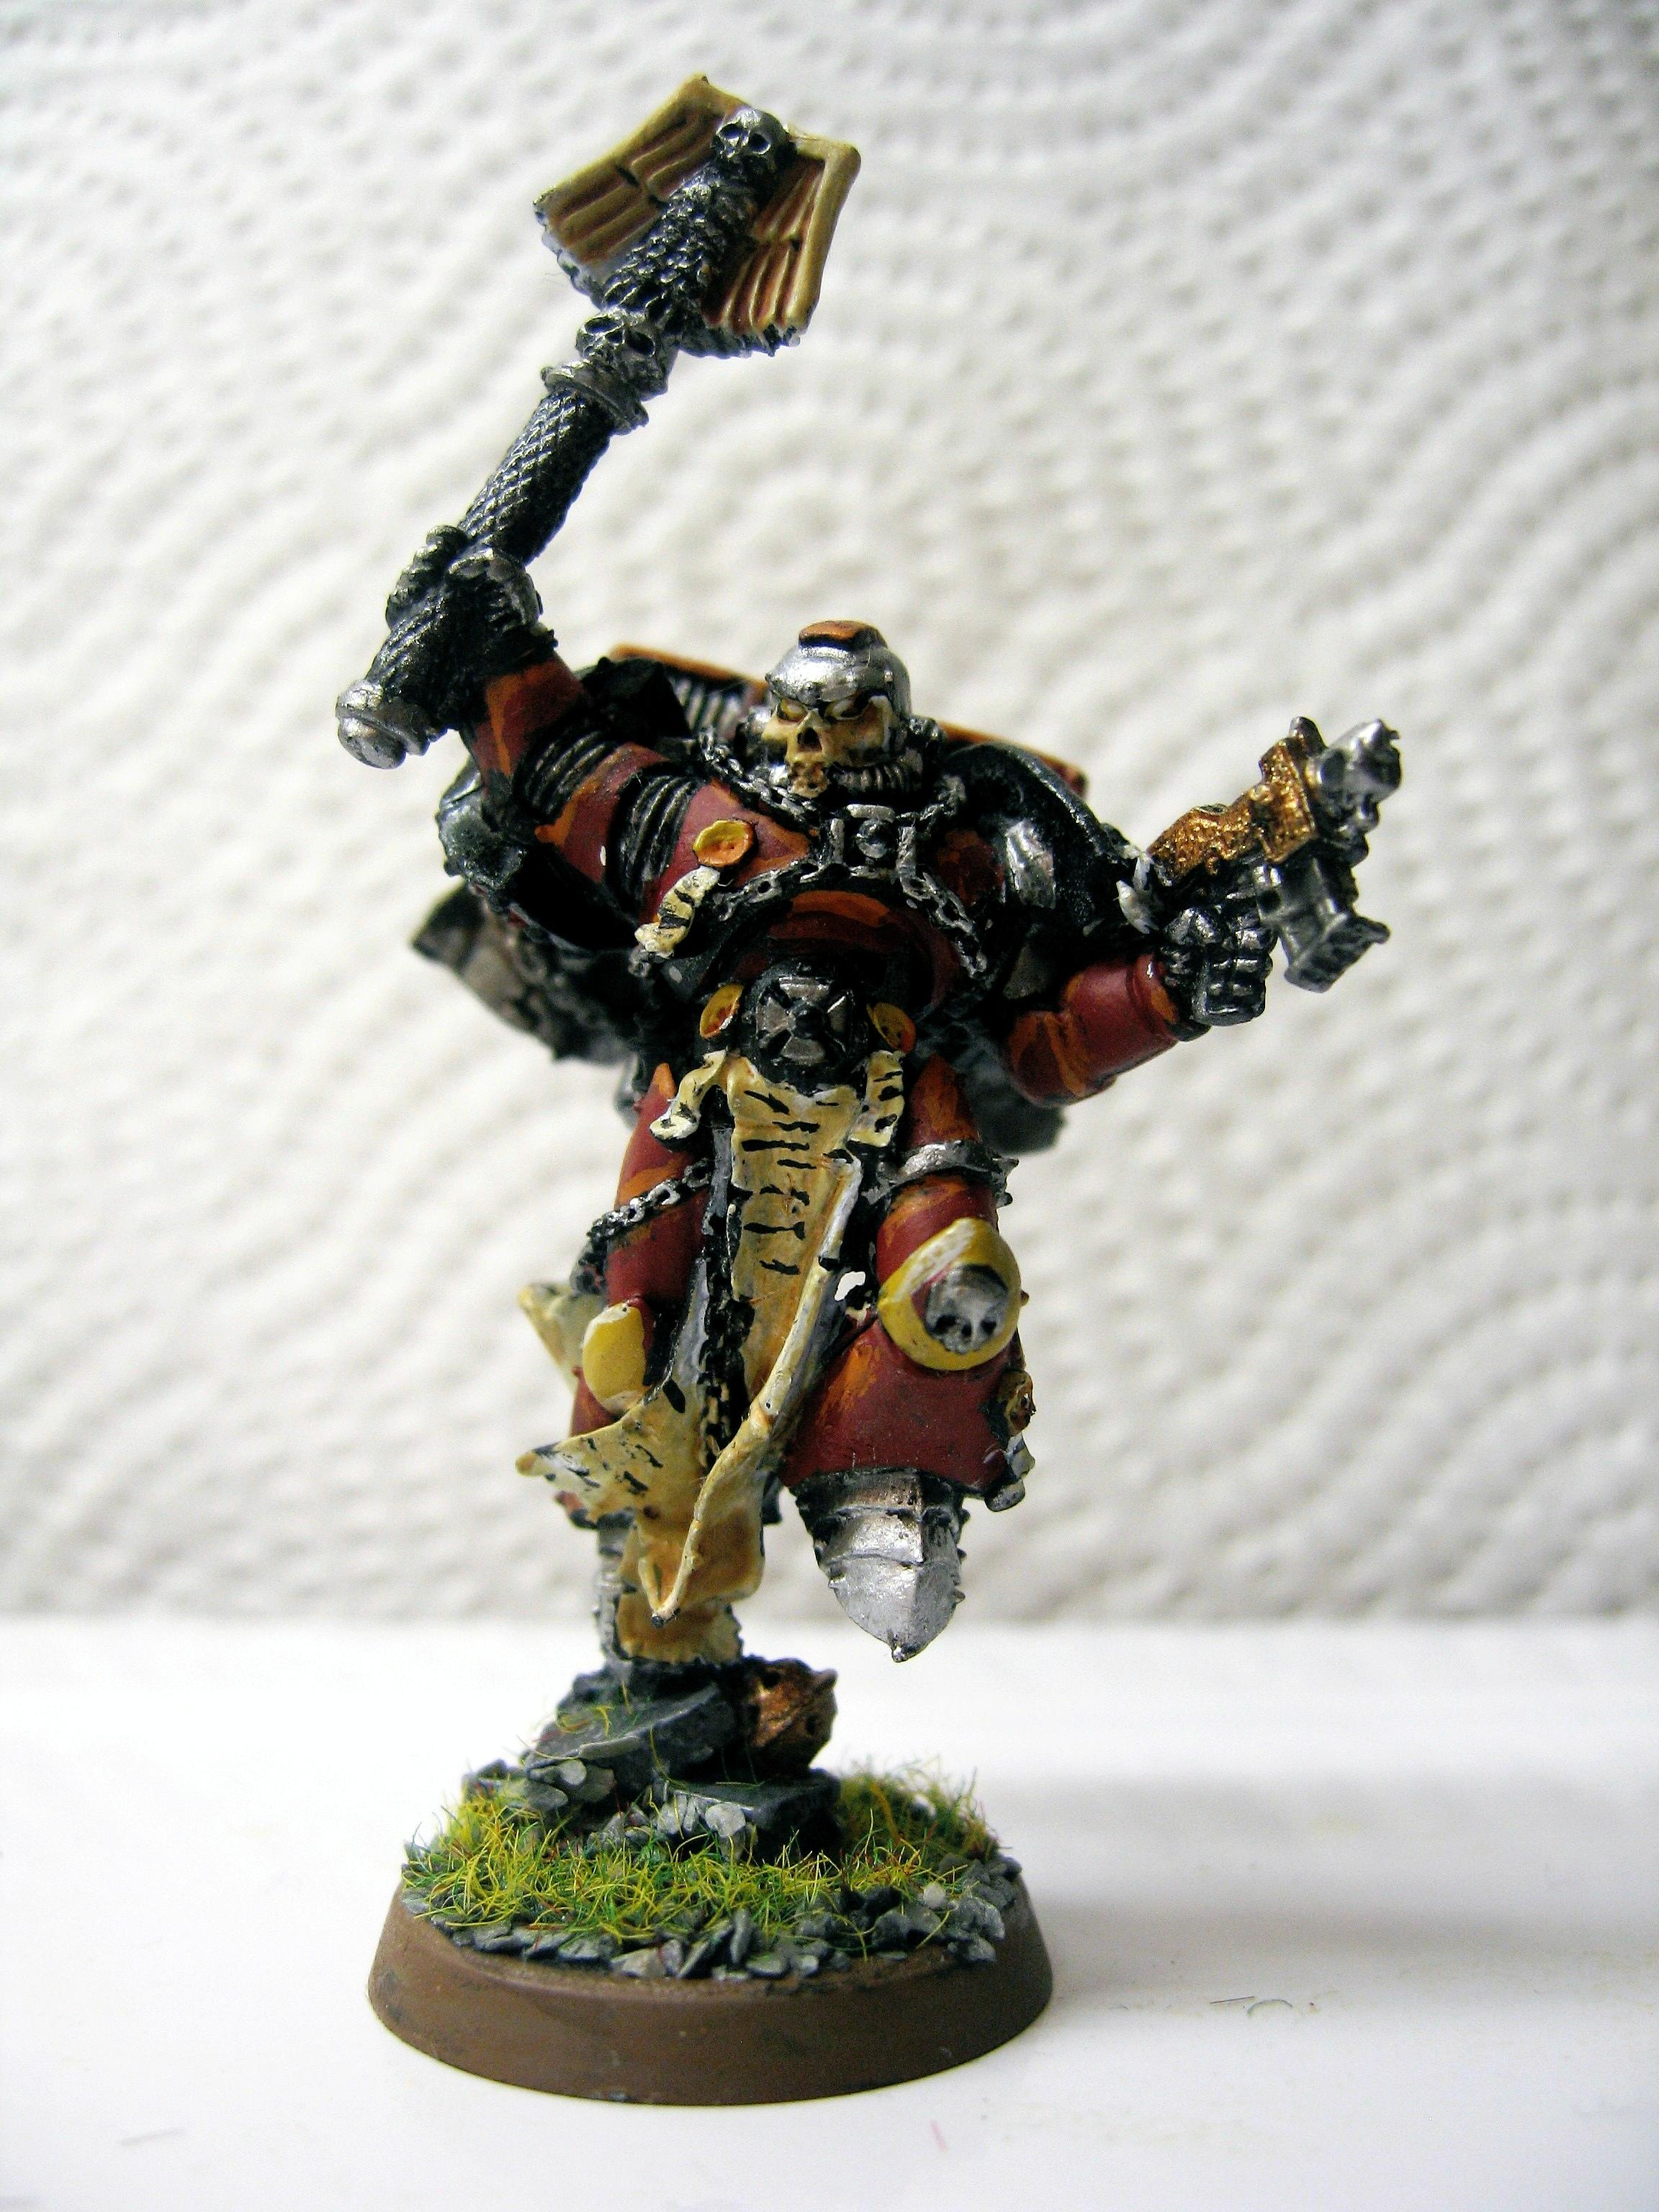 Cannon, Chaplain, Dawn Knights, Dwarves, Models, New, Orks, Painted, Red, Space Marines, Stompa, Warhammer 40,000, Warhammer Fantasy